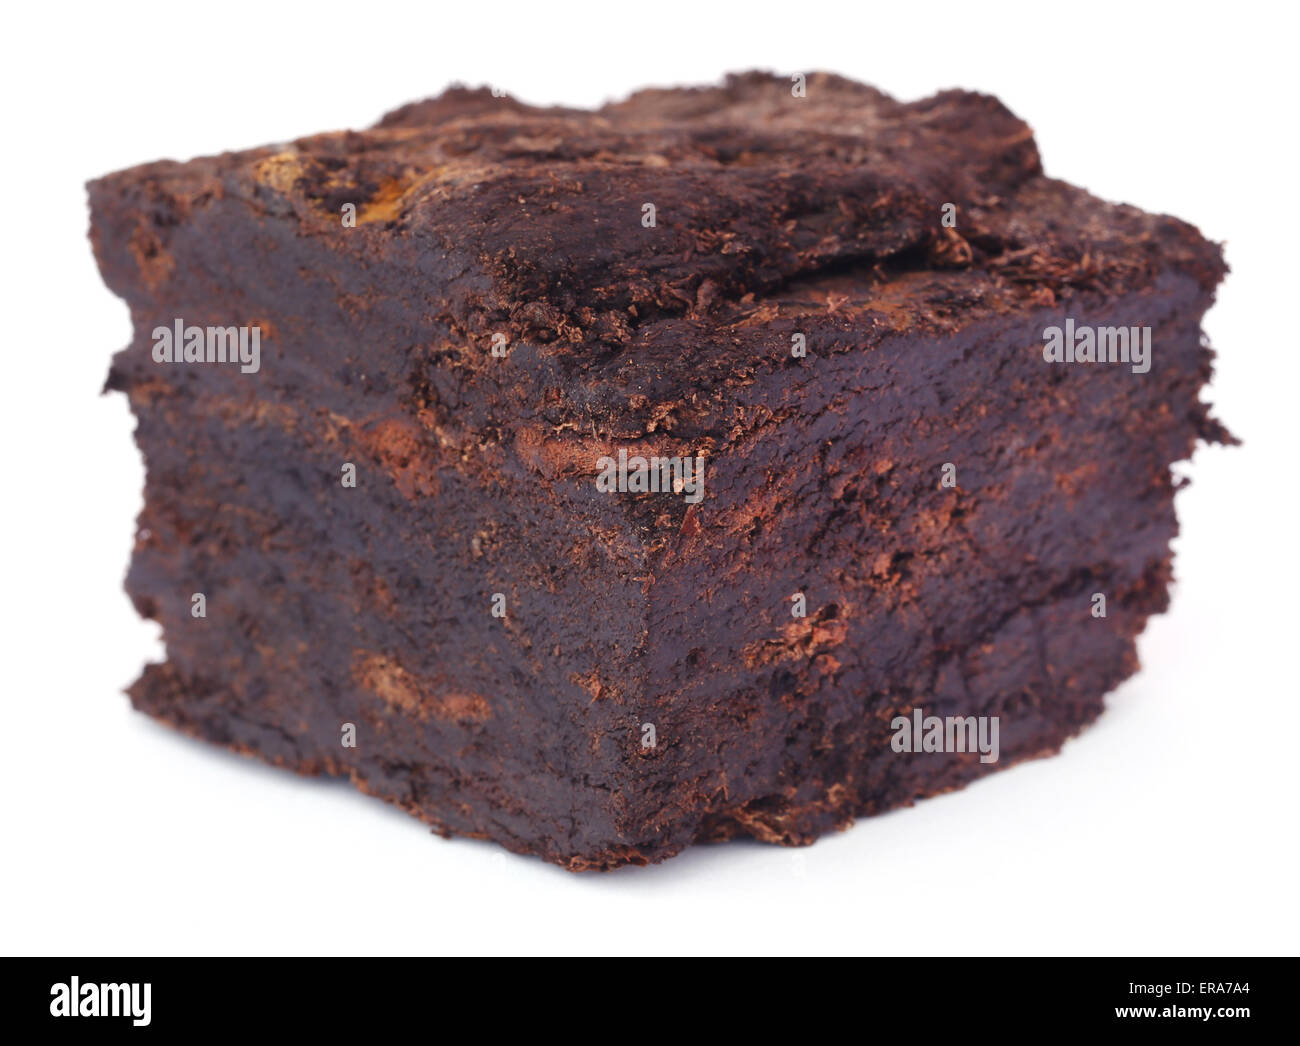 Close up of peat block over white background - Stock Image